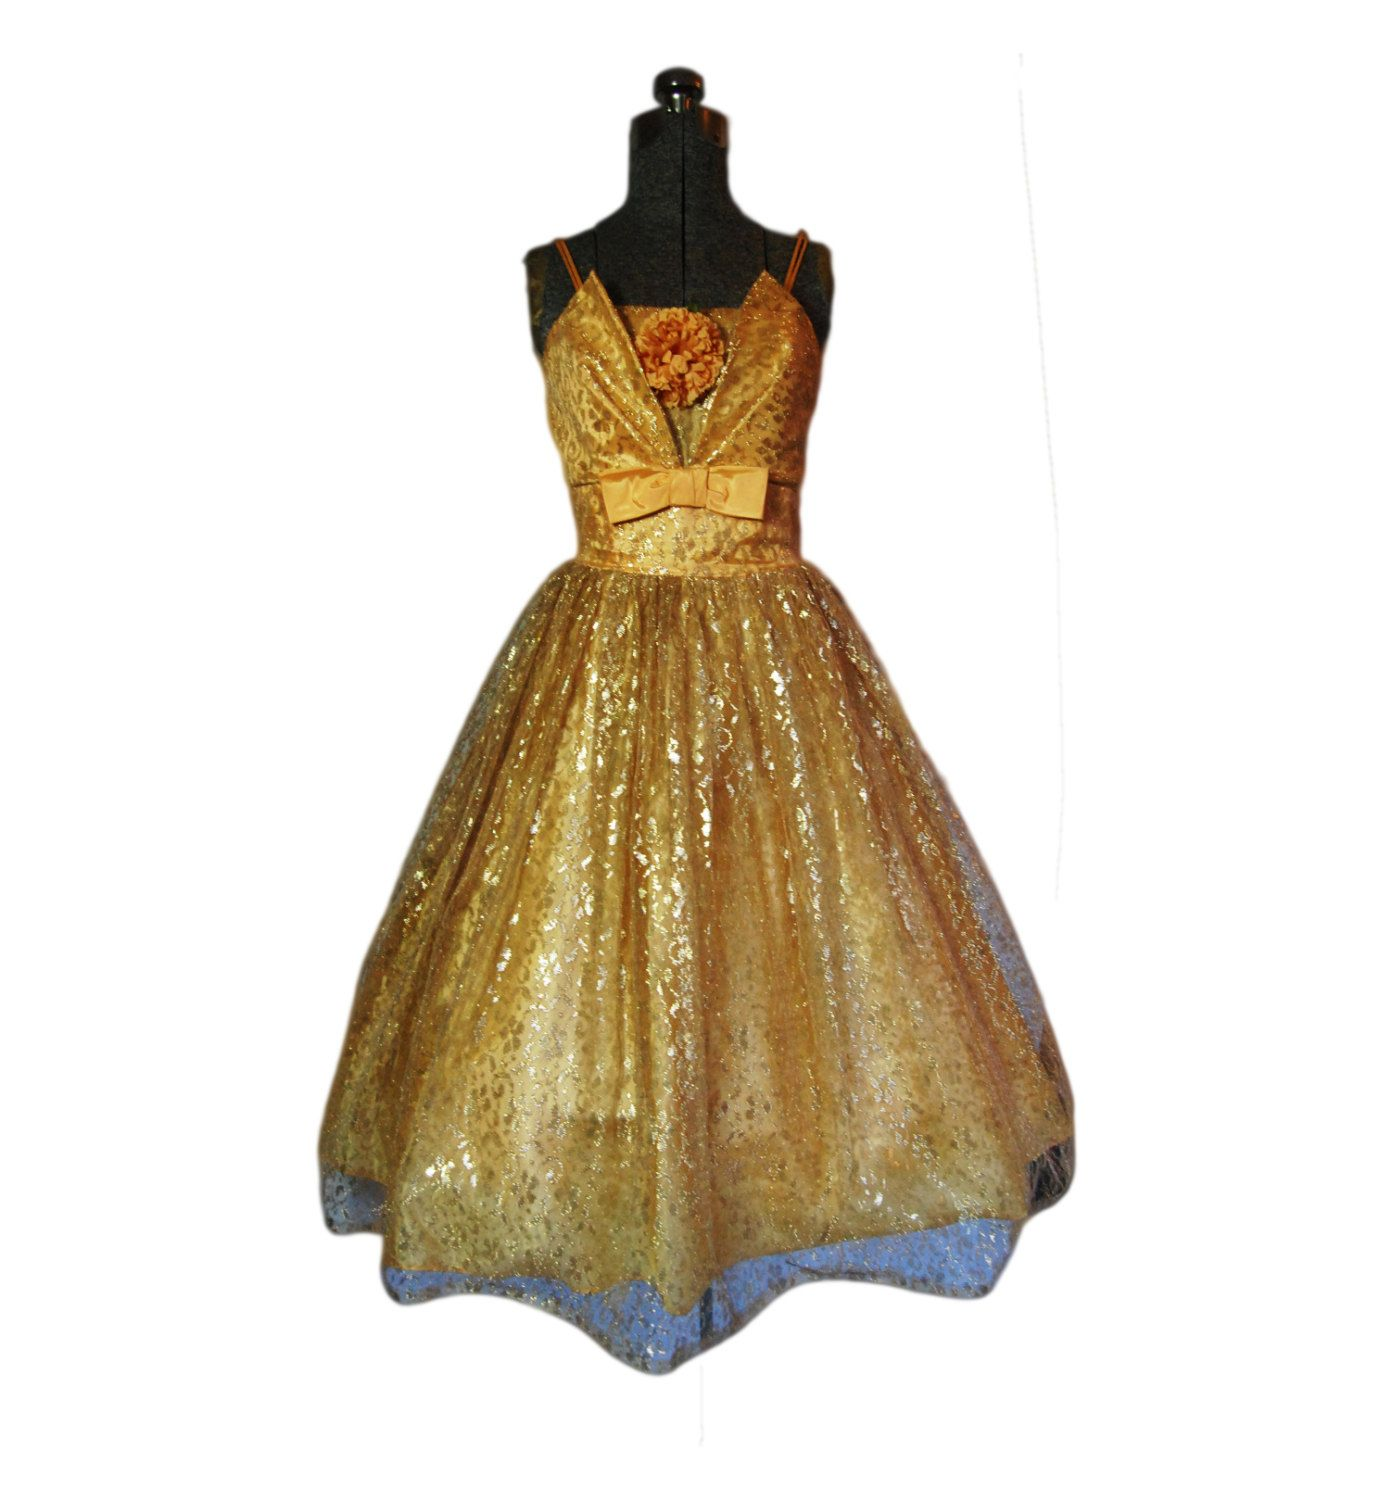 Vintage s dress gold lace full skirt party prom cocktail